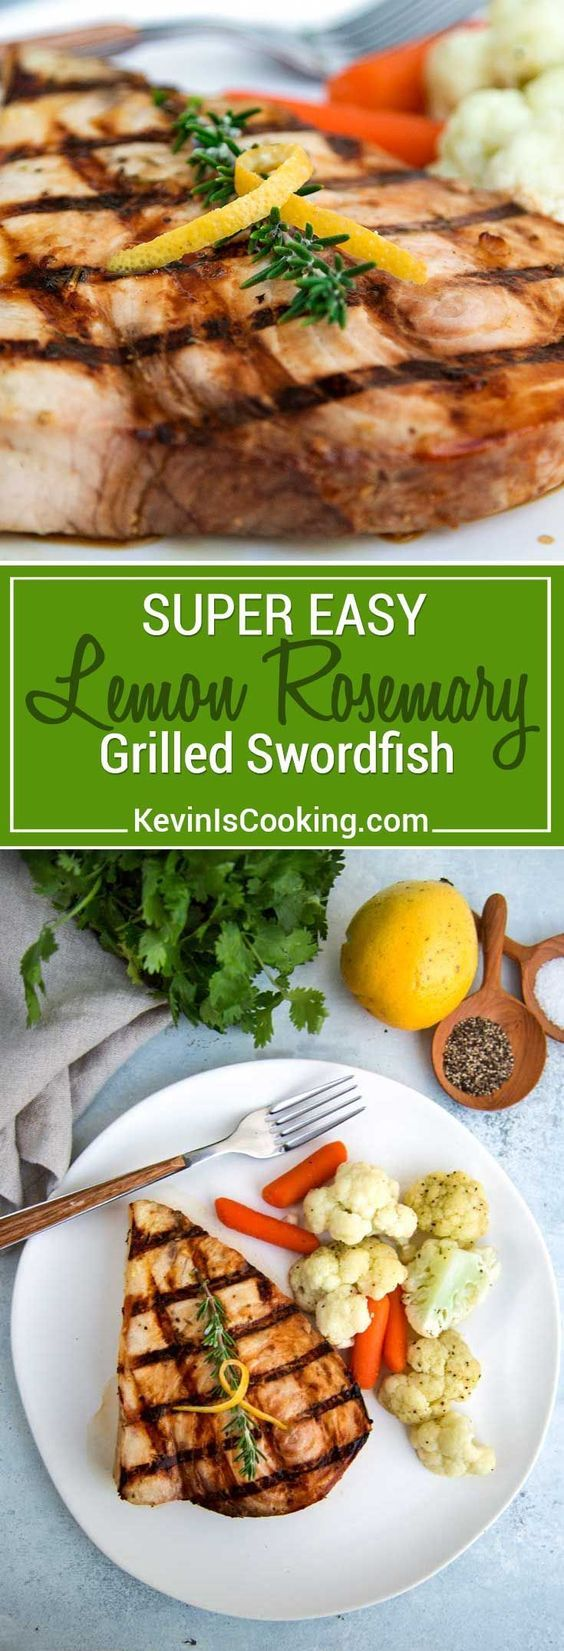 This simple and easy Lemon Rosemary Grilled Swordfish marinates with fresh rosemary, garlic, melted butter, lemon juice & zest and then is grilled quickly. via @keviniscooking #seafood #swordfish